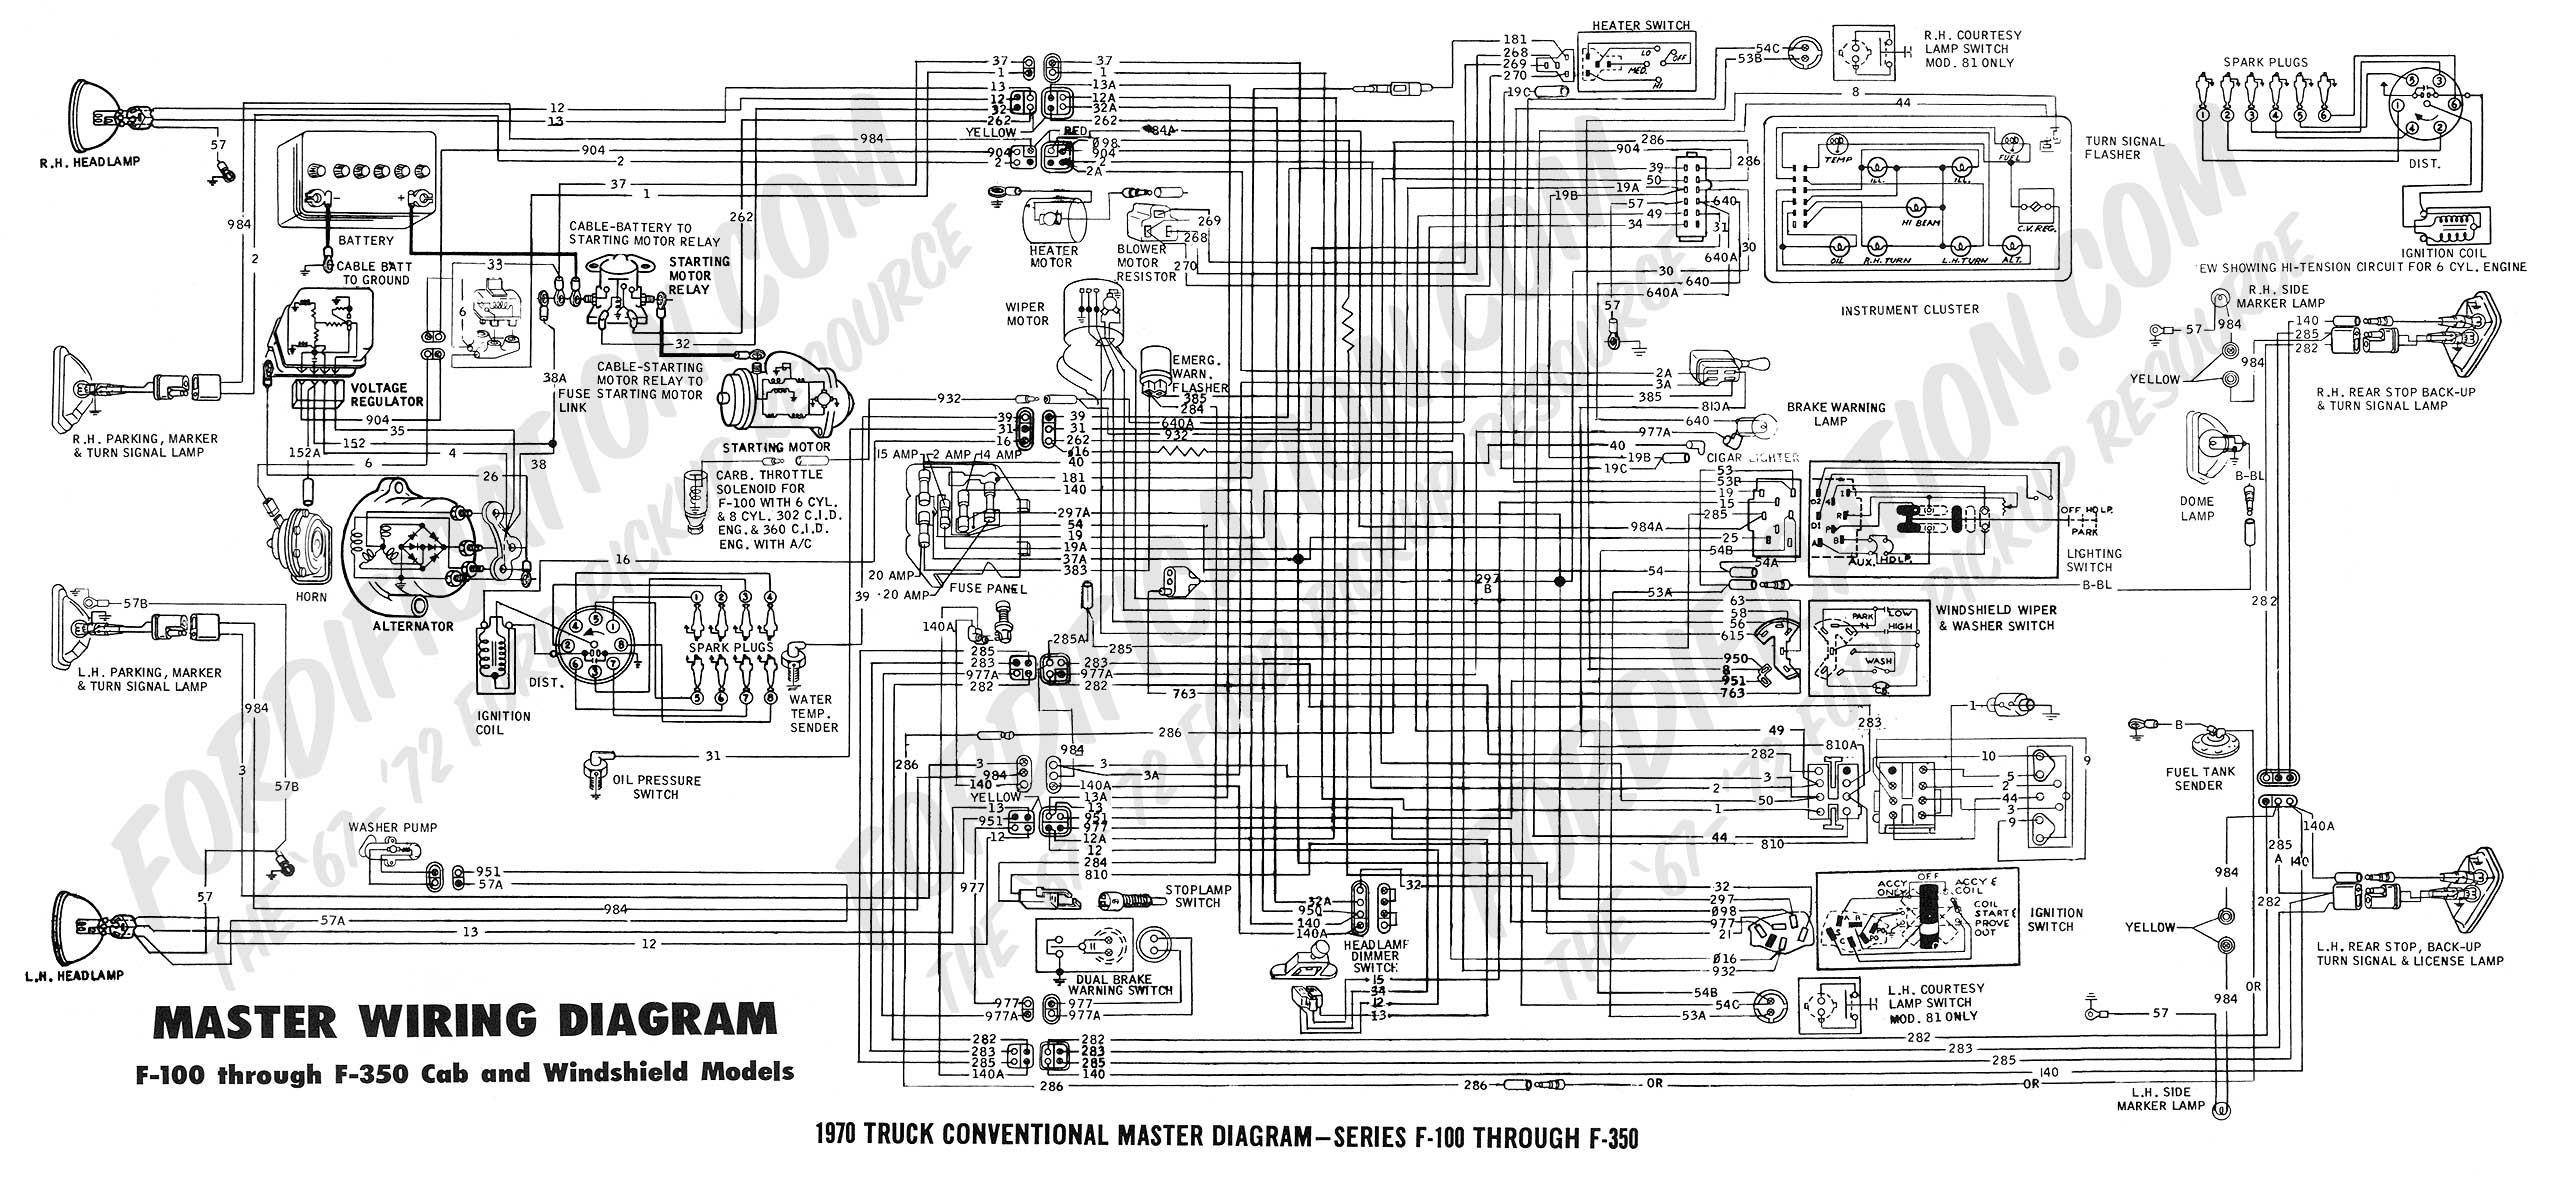 truck wiring diagrams truck wiring diagrams online 1970 f 100 f250 master diagram flathead electrical wiring diagrams